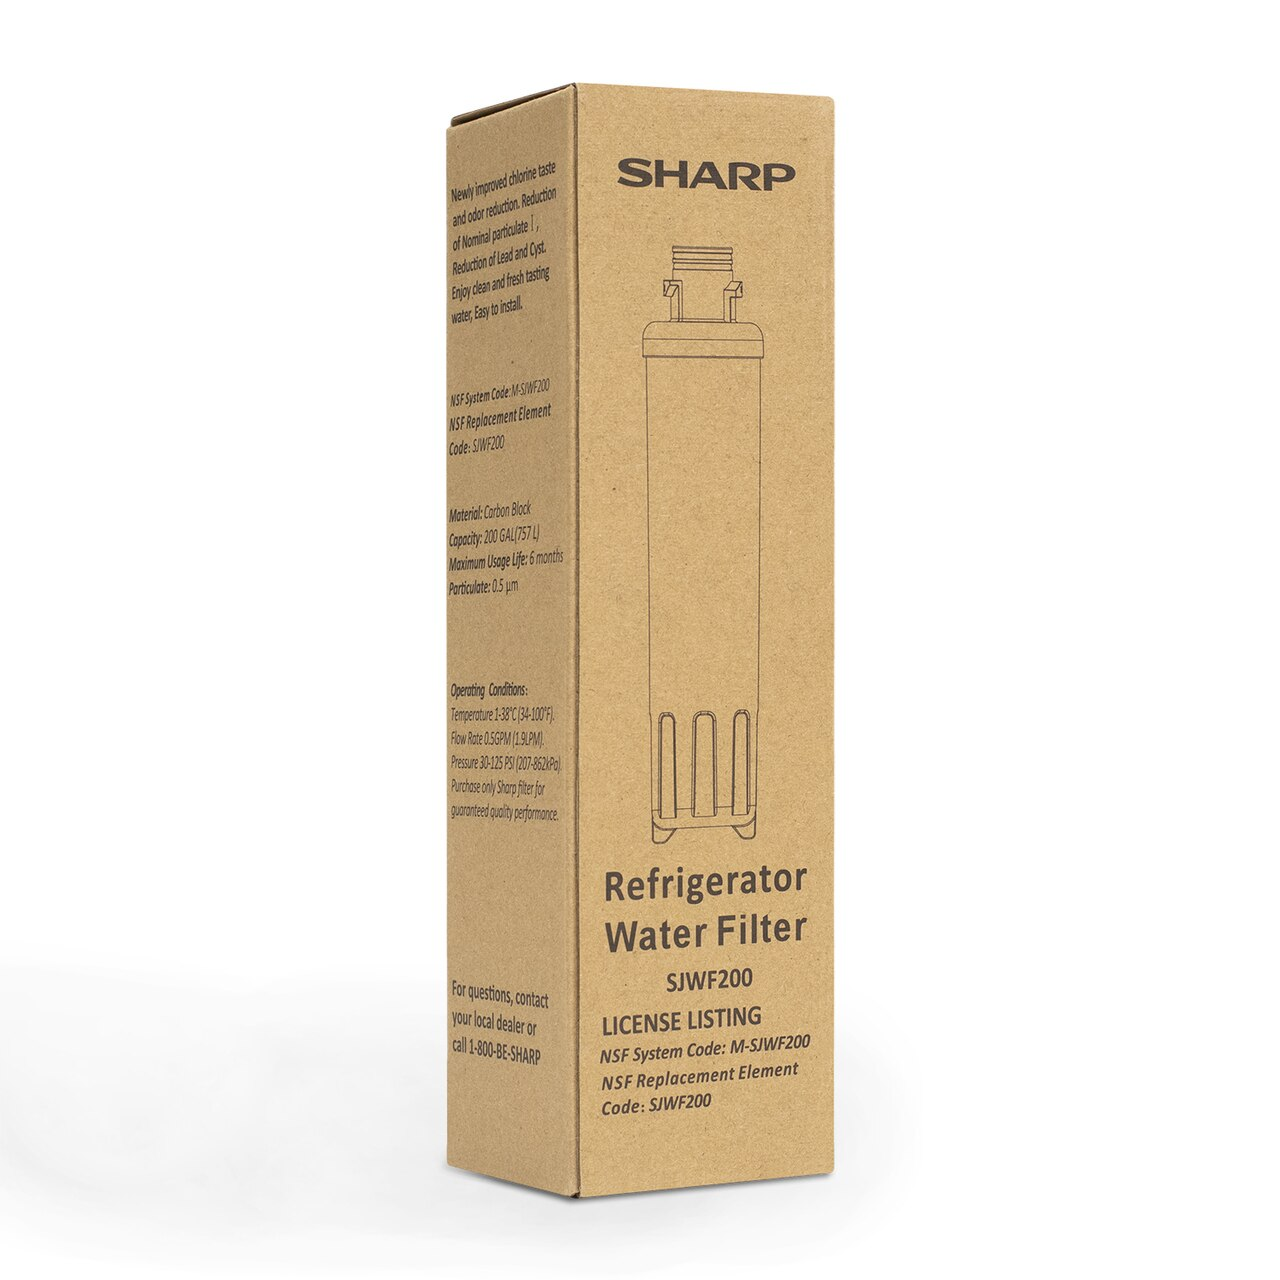 Box for Replacement Water Filter for Sharp SJG2254FS Refrigerator (SJWF200) - right angle view